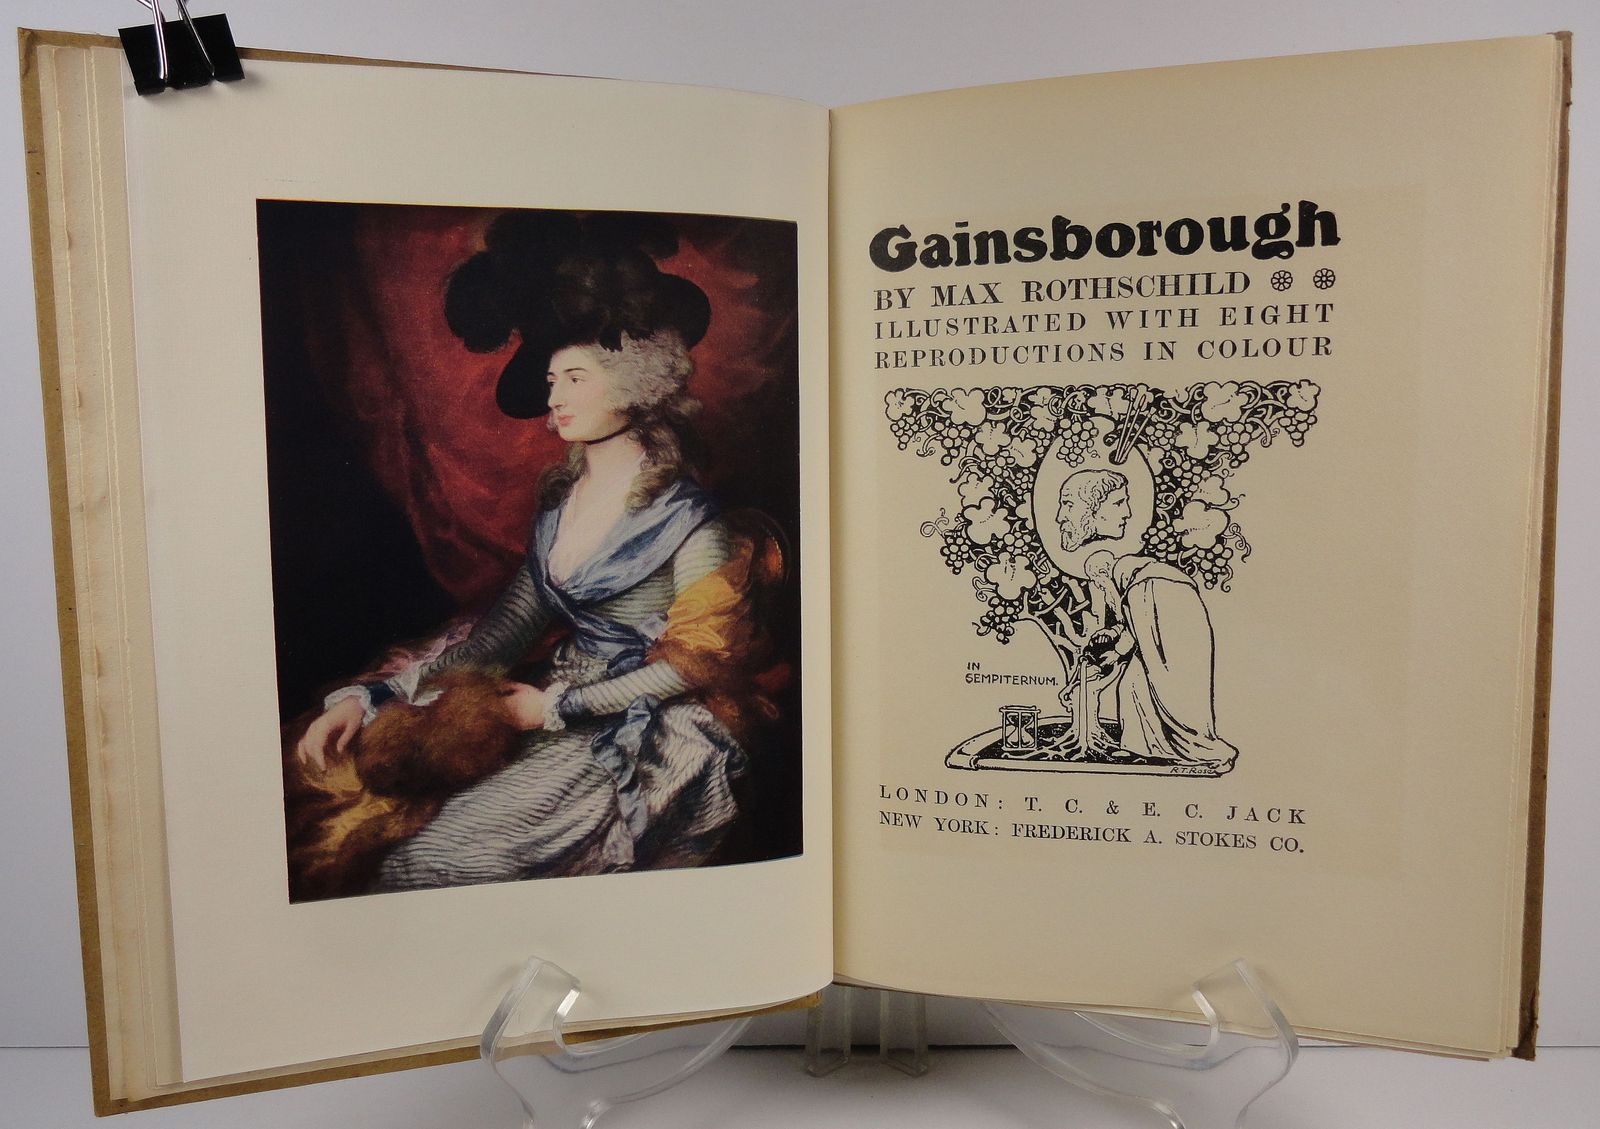 Gainsborough Masterpieces in Colour by Max Rothschild